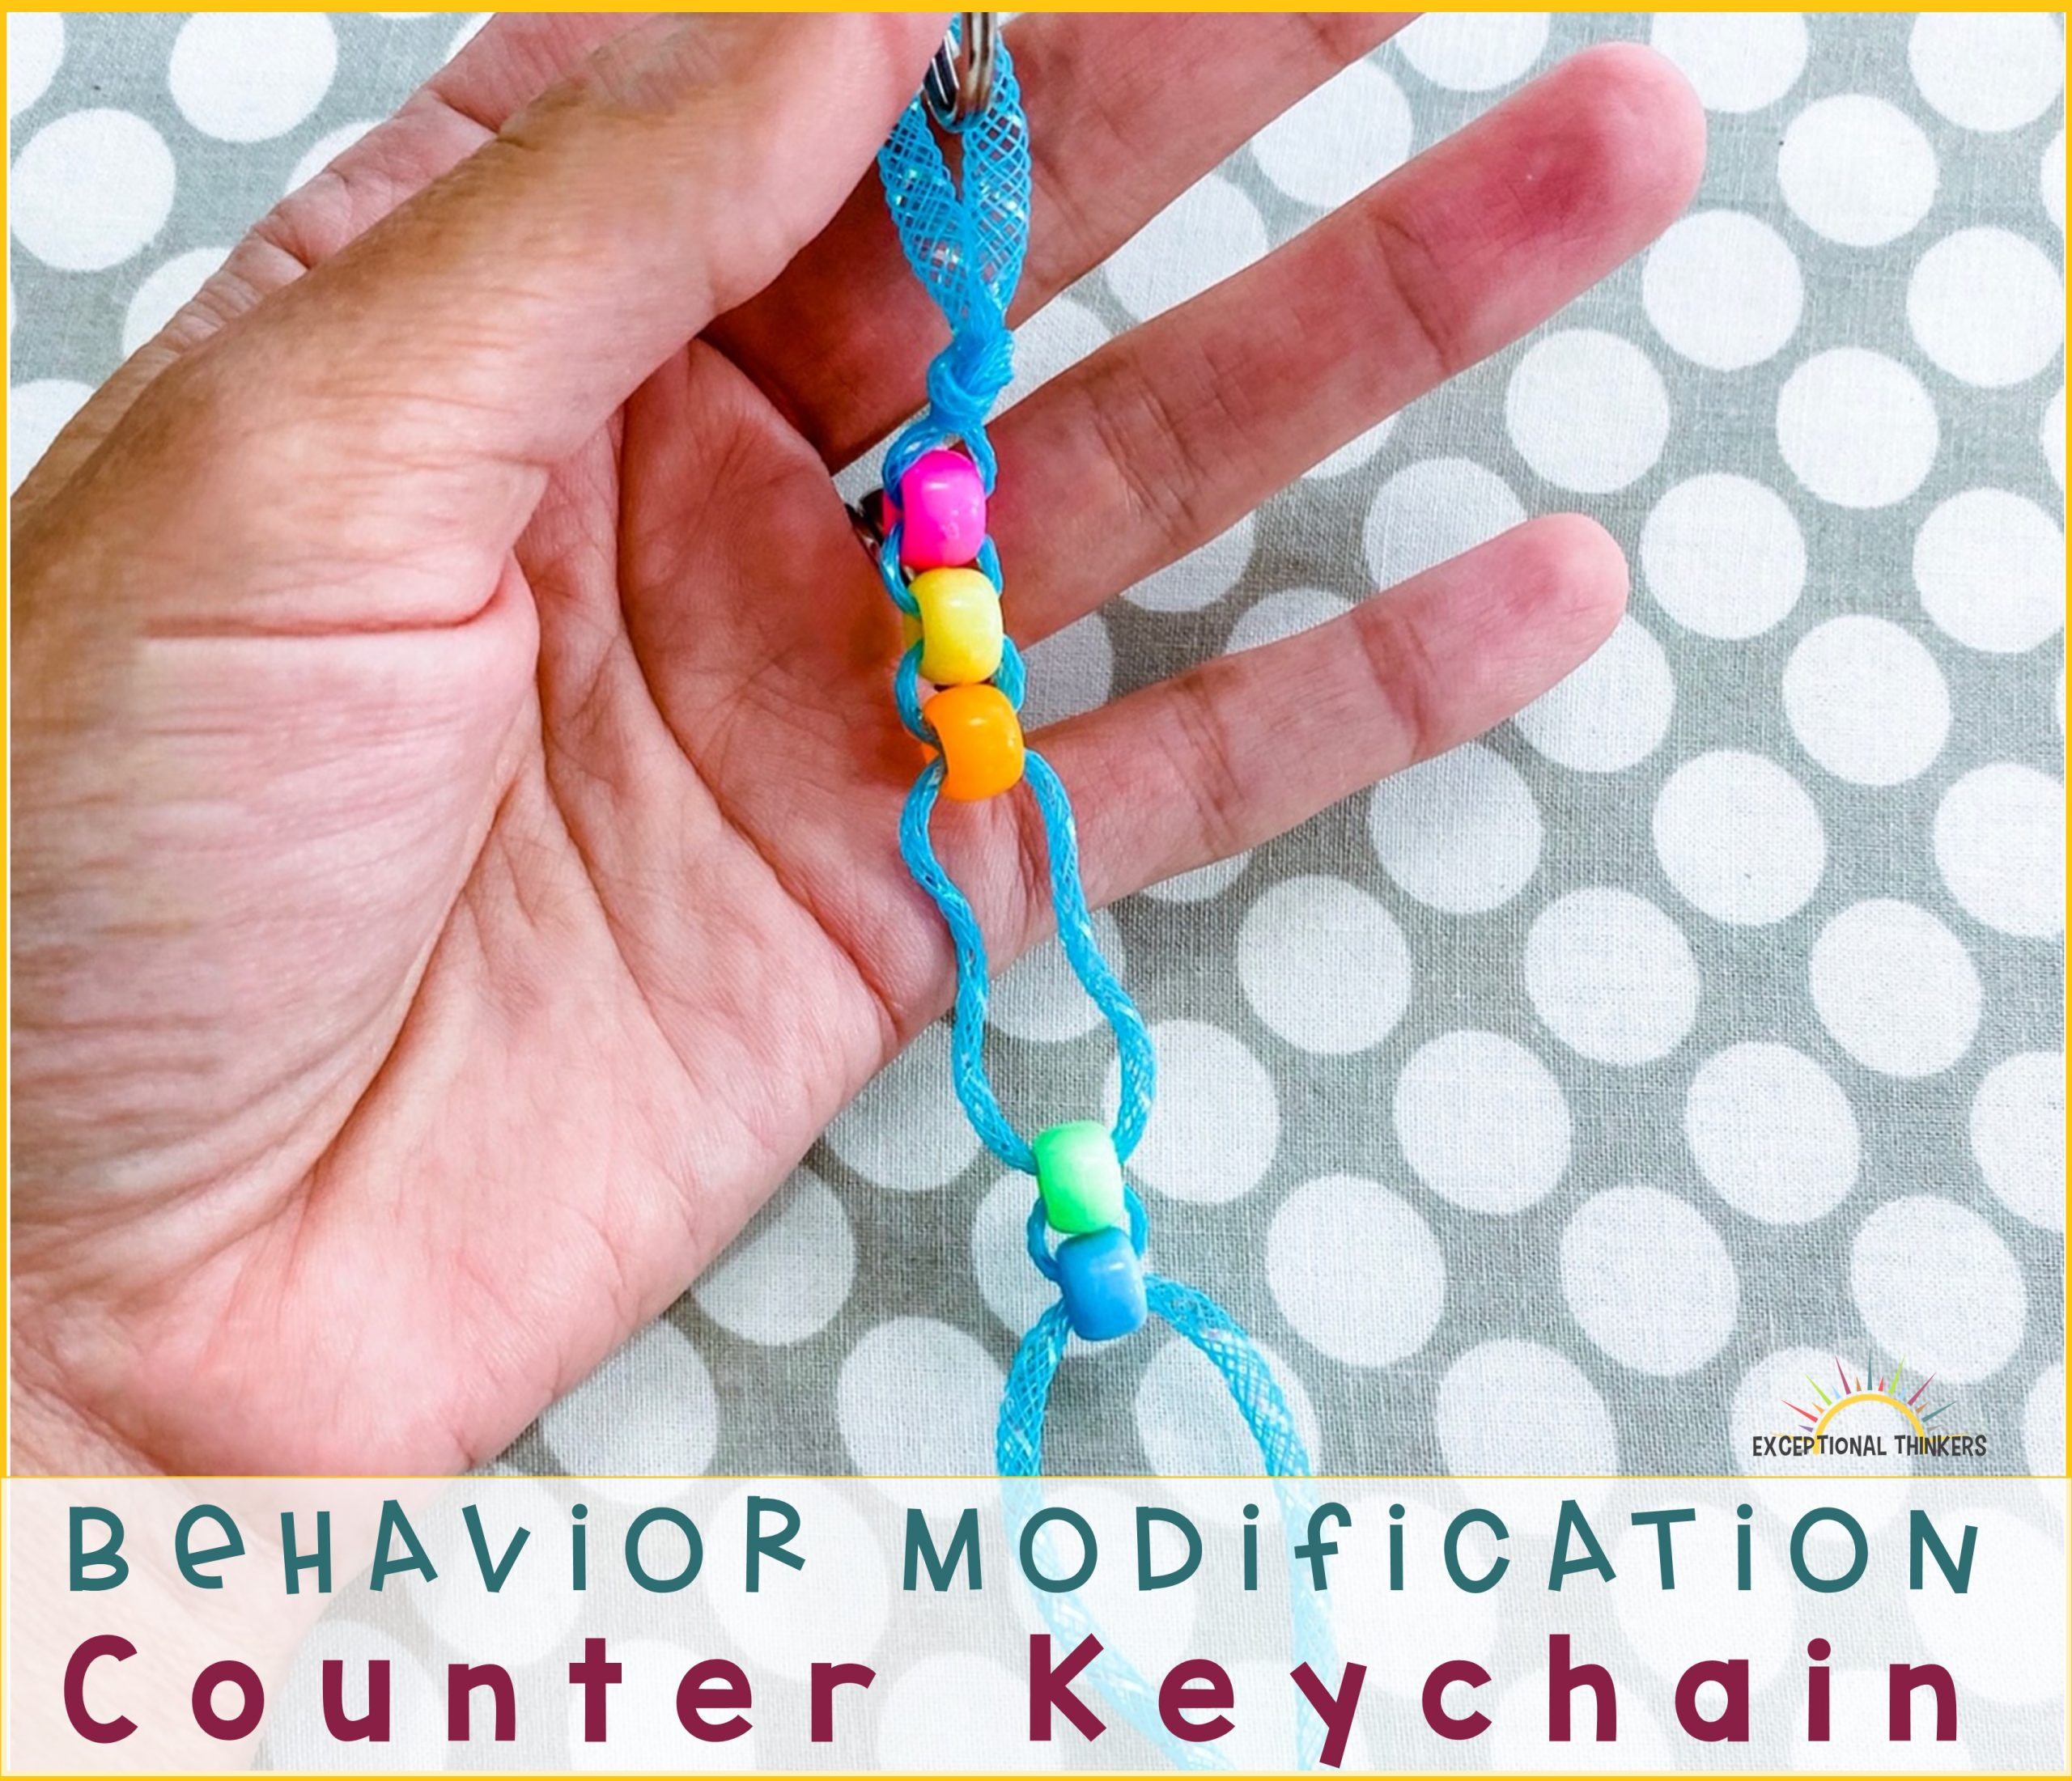 How to Make a Counter Keychain for Behavior Management